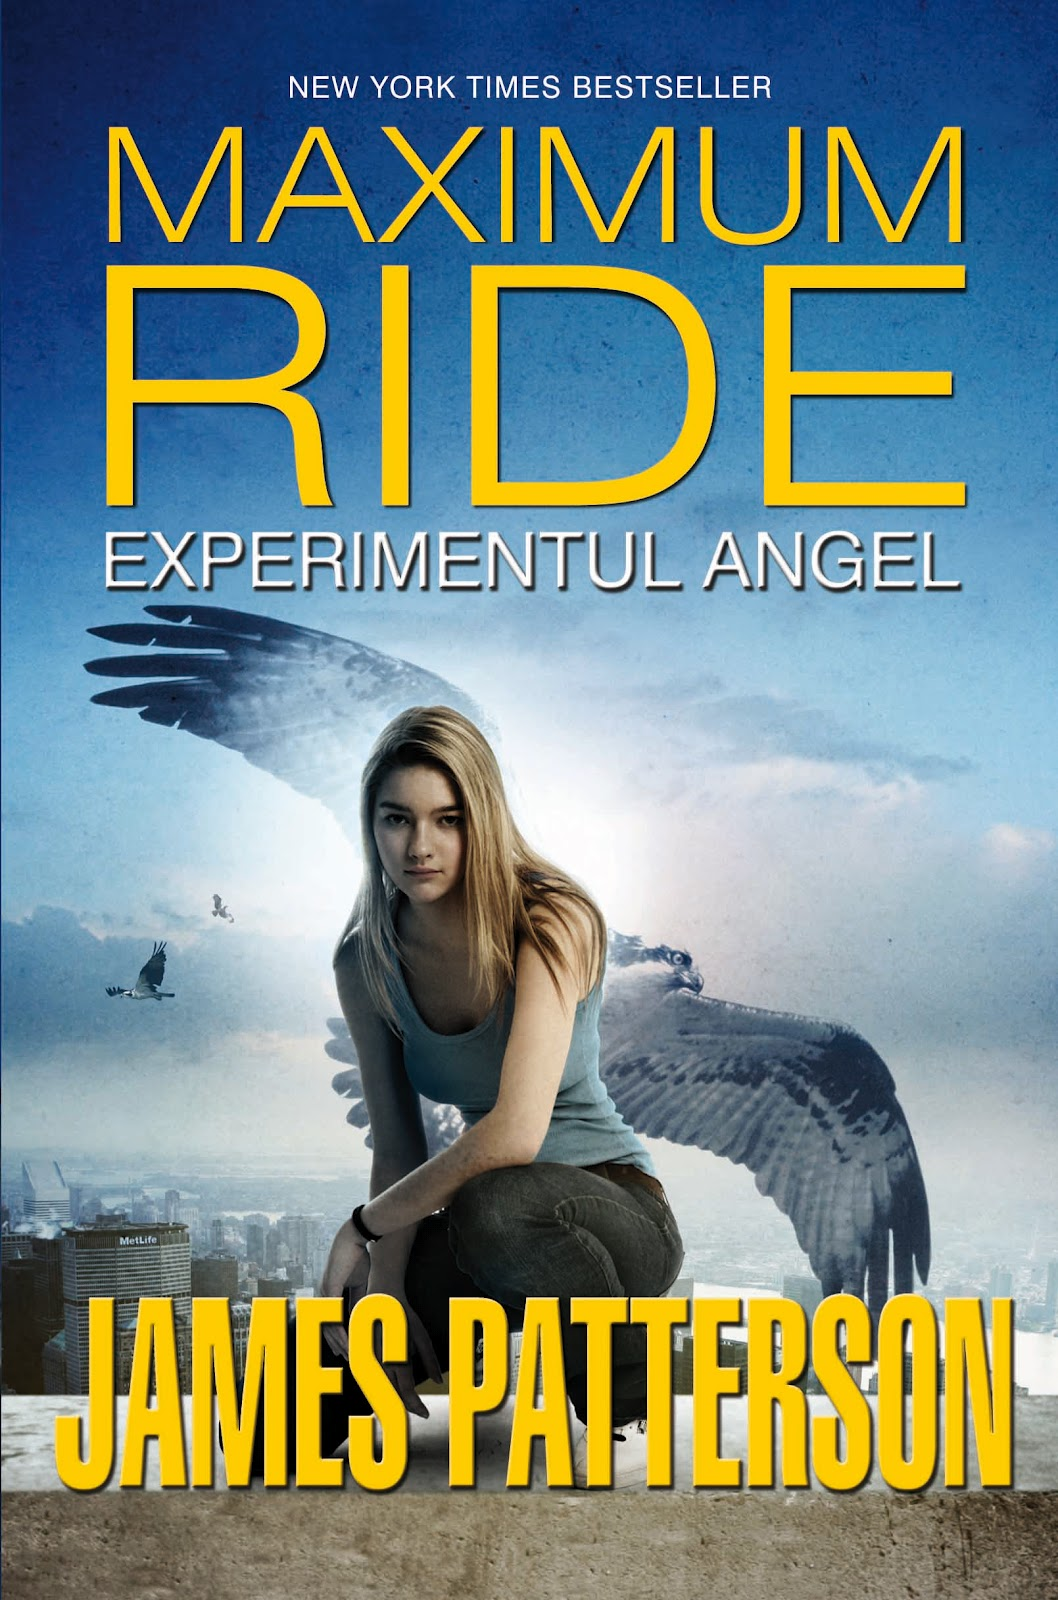 James Patterson: Experimentul Angel